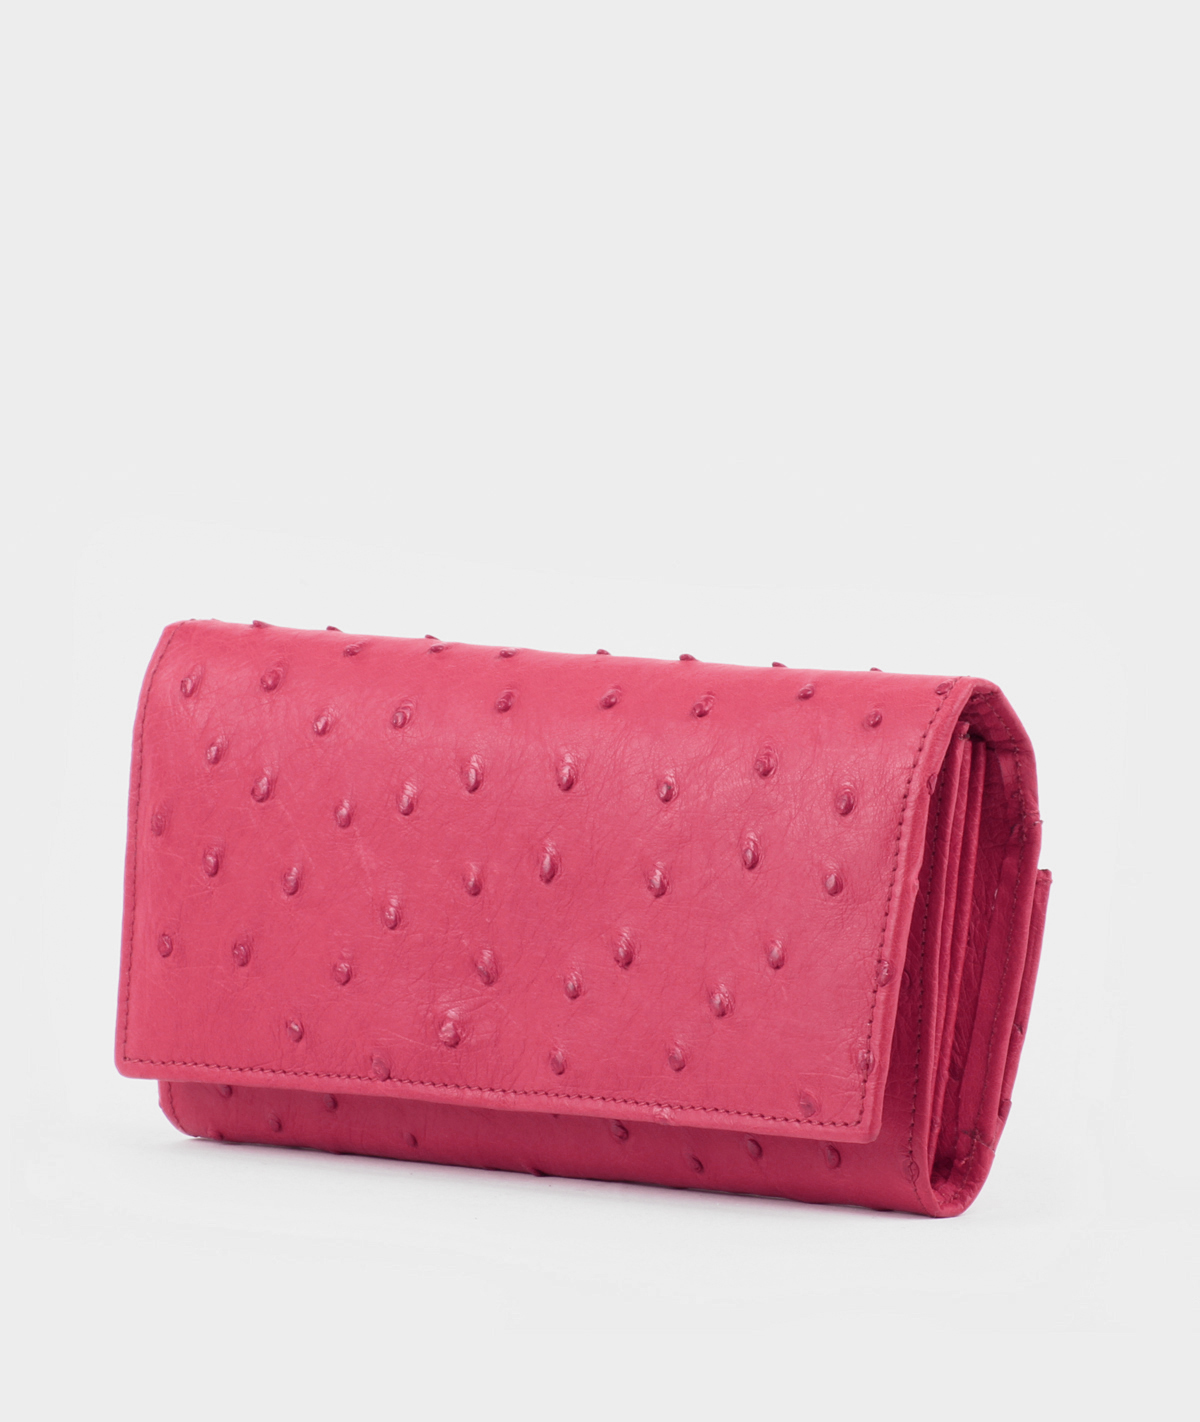 WOMENS WALLET IN MATT KISS